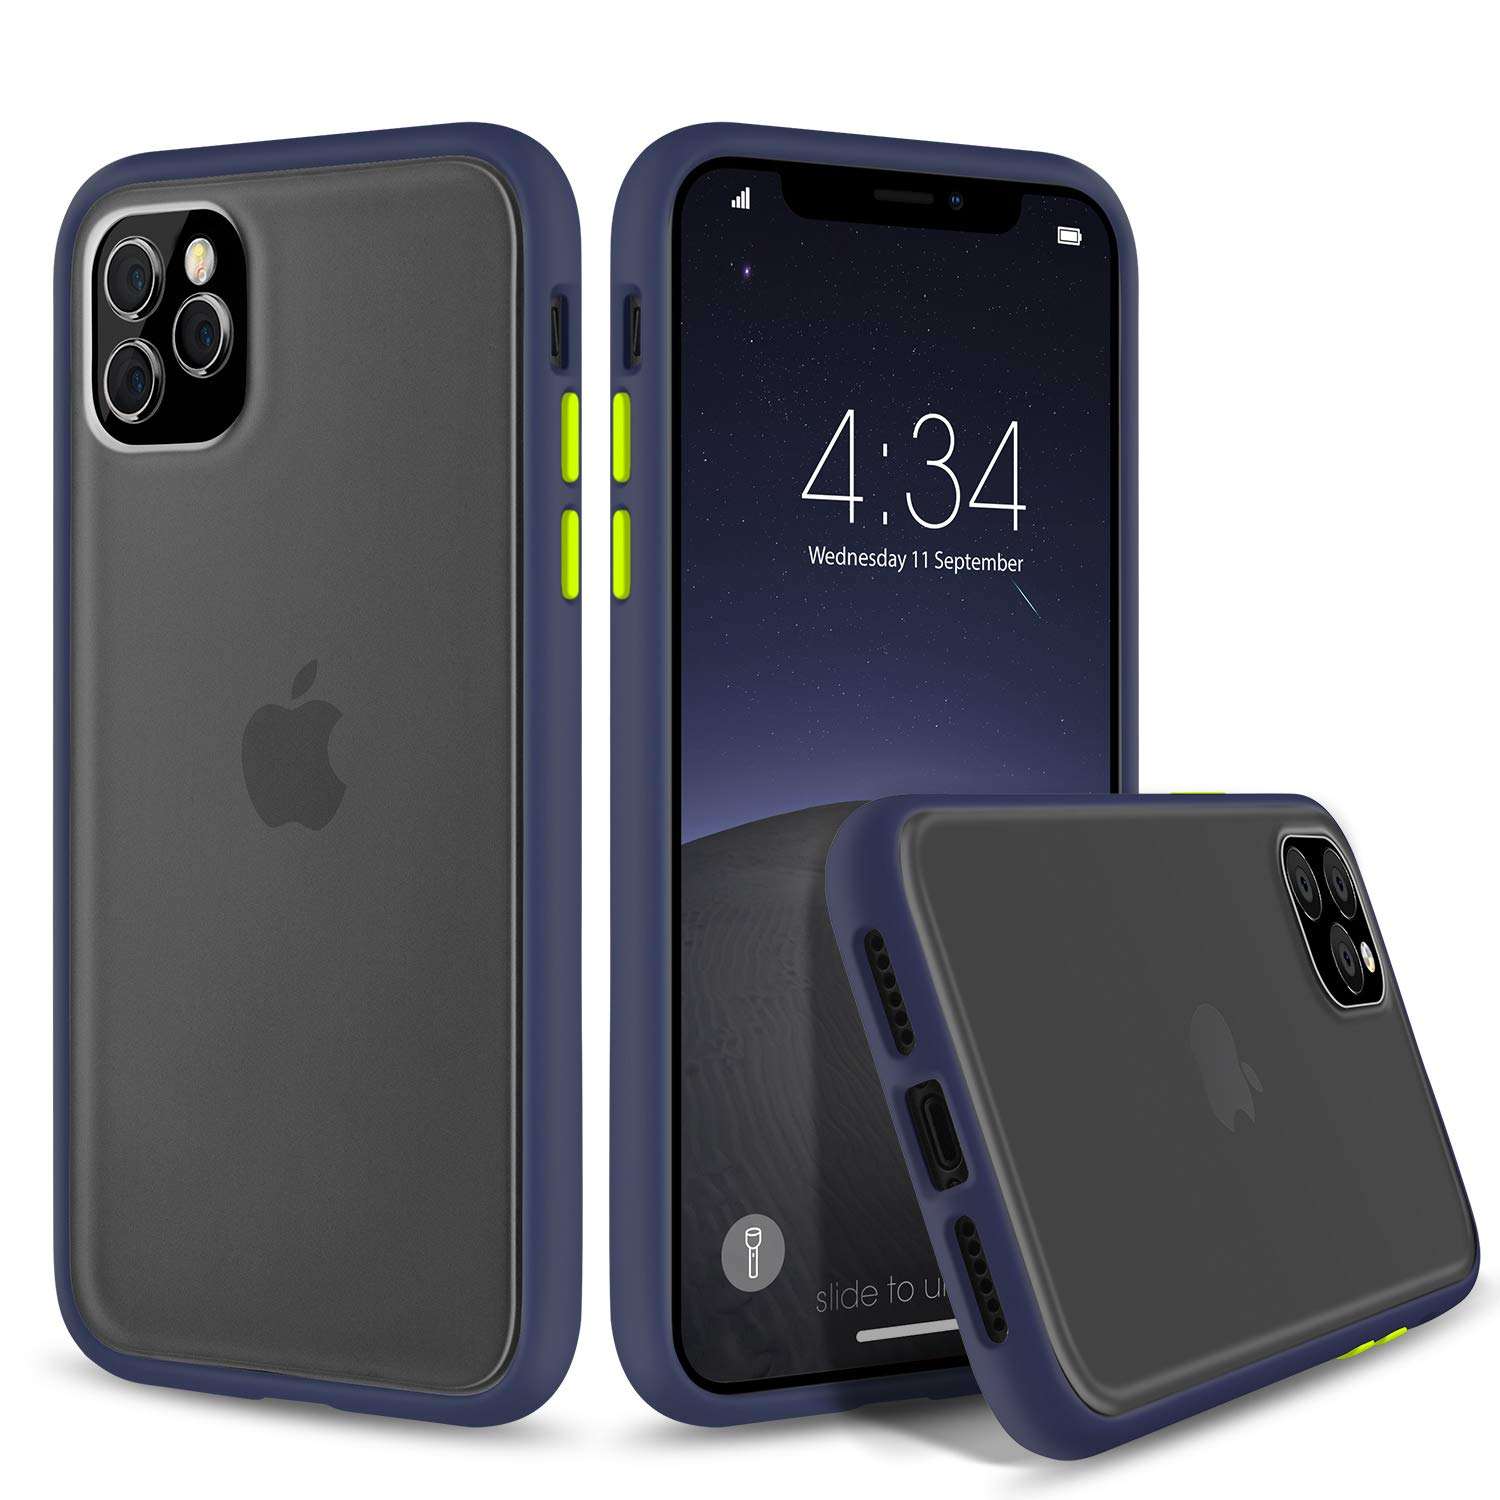 abitku Slim Fit for iPhone 11 Pro Max Case 6.5 Inch, Translucent Matte Back [Shockproof and Anti-Drop Protection] Cover Frosted Case for iPhone 11 Pro Max 6.5 inch 2019 (Blue)